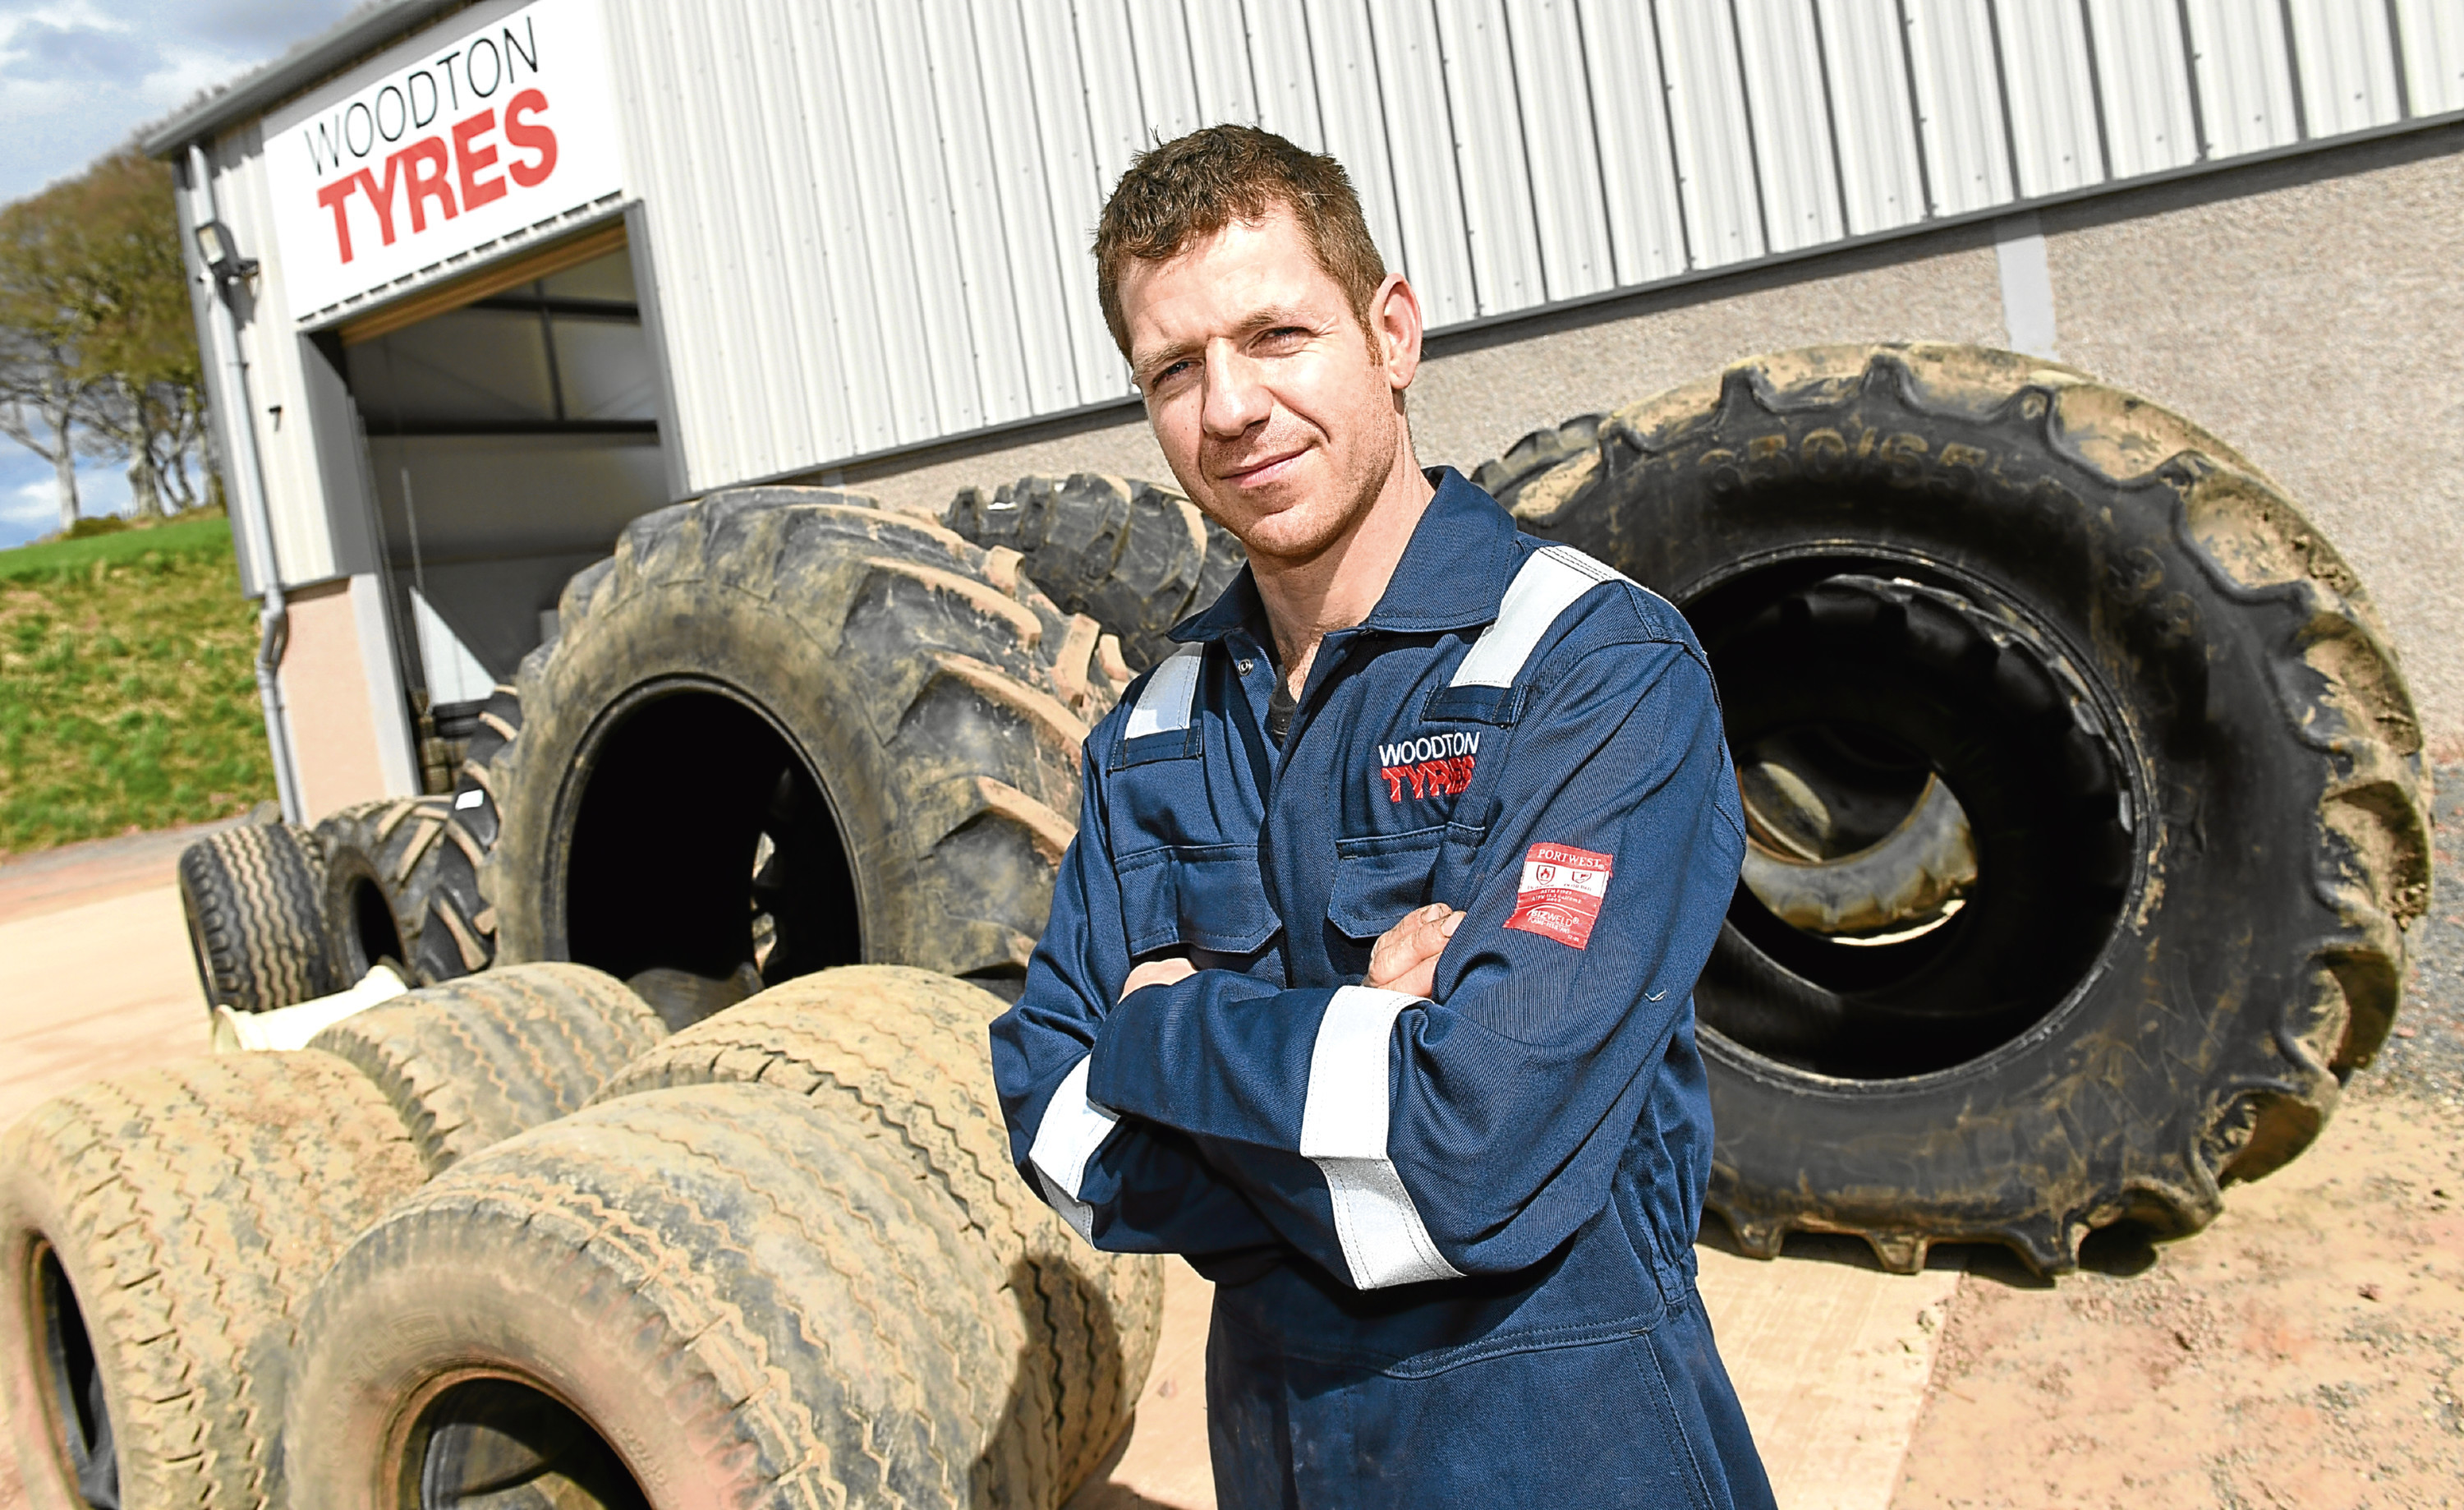 Phil Totton of Woodton Tyres Ltd in Cuminestone